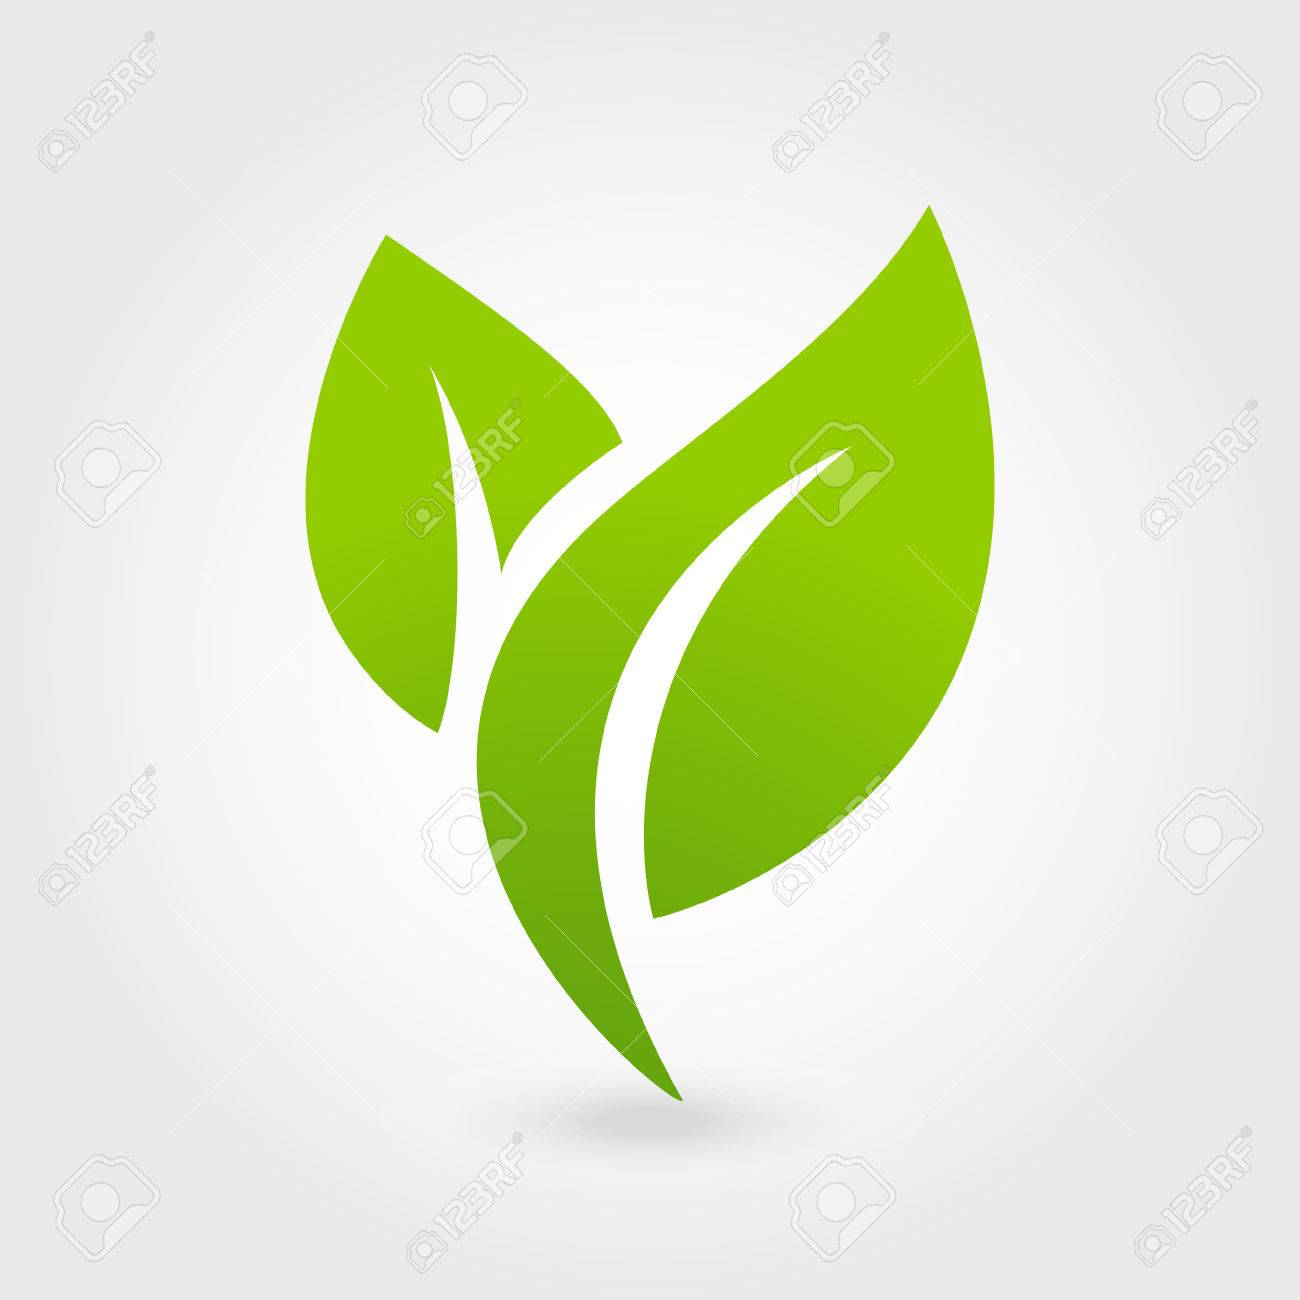 Abstract leafs care vector logo icon. Eco icon with green leaf. - 50559166